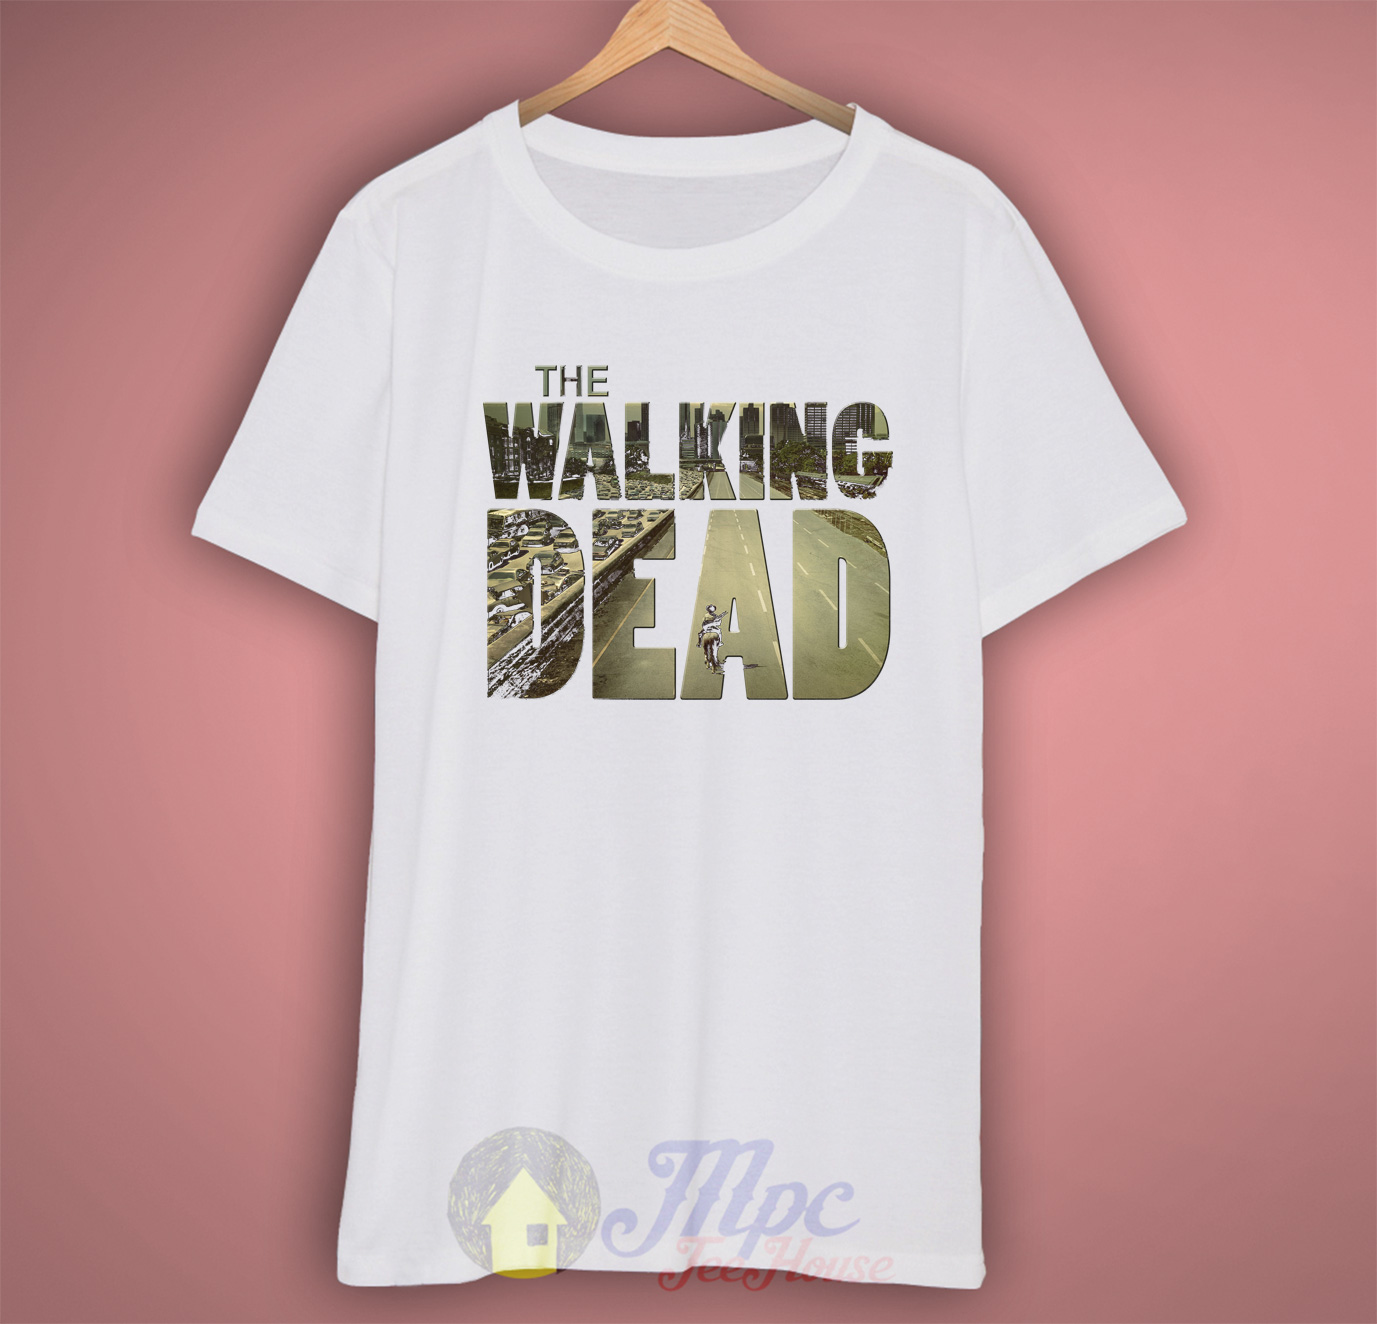 The Walking Dead Symbol Cool Graphic T Shirt Mpcteehouse